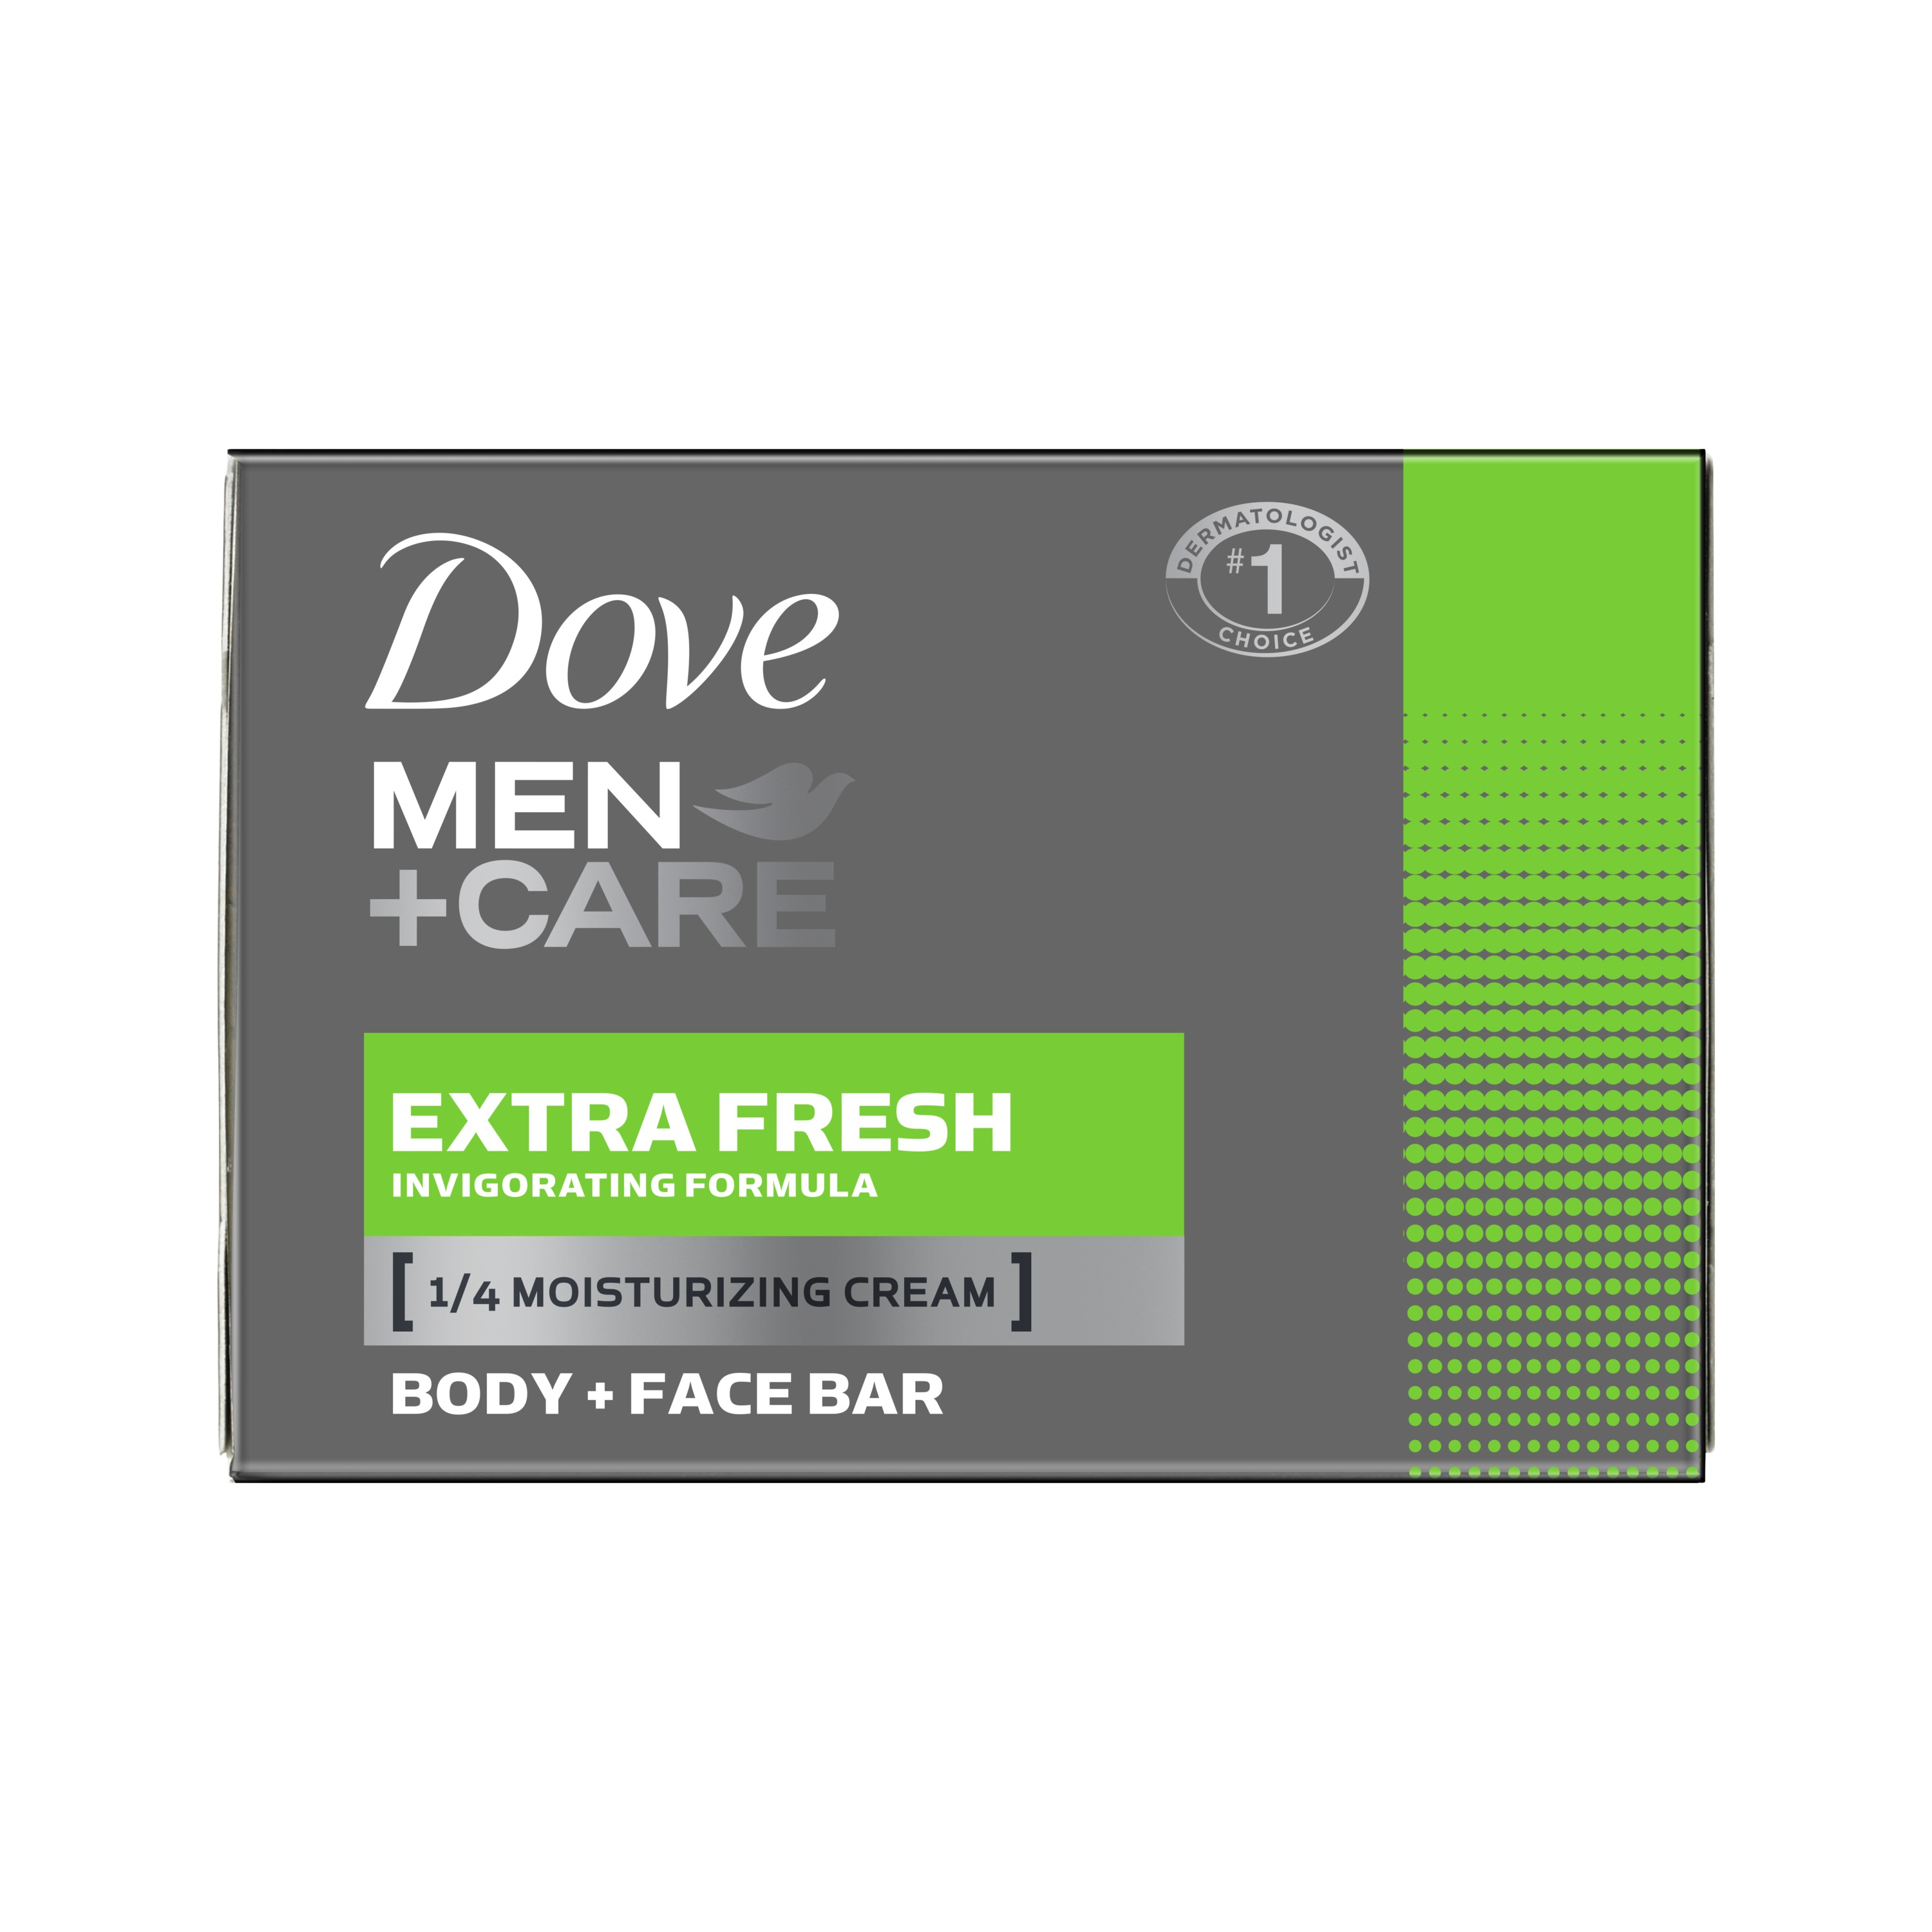 Dove Men+Care Body and Face Bar Extra Fresh 4 oz, 6 Bar